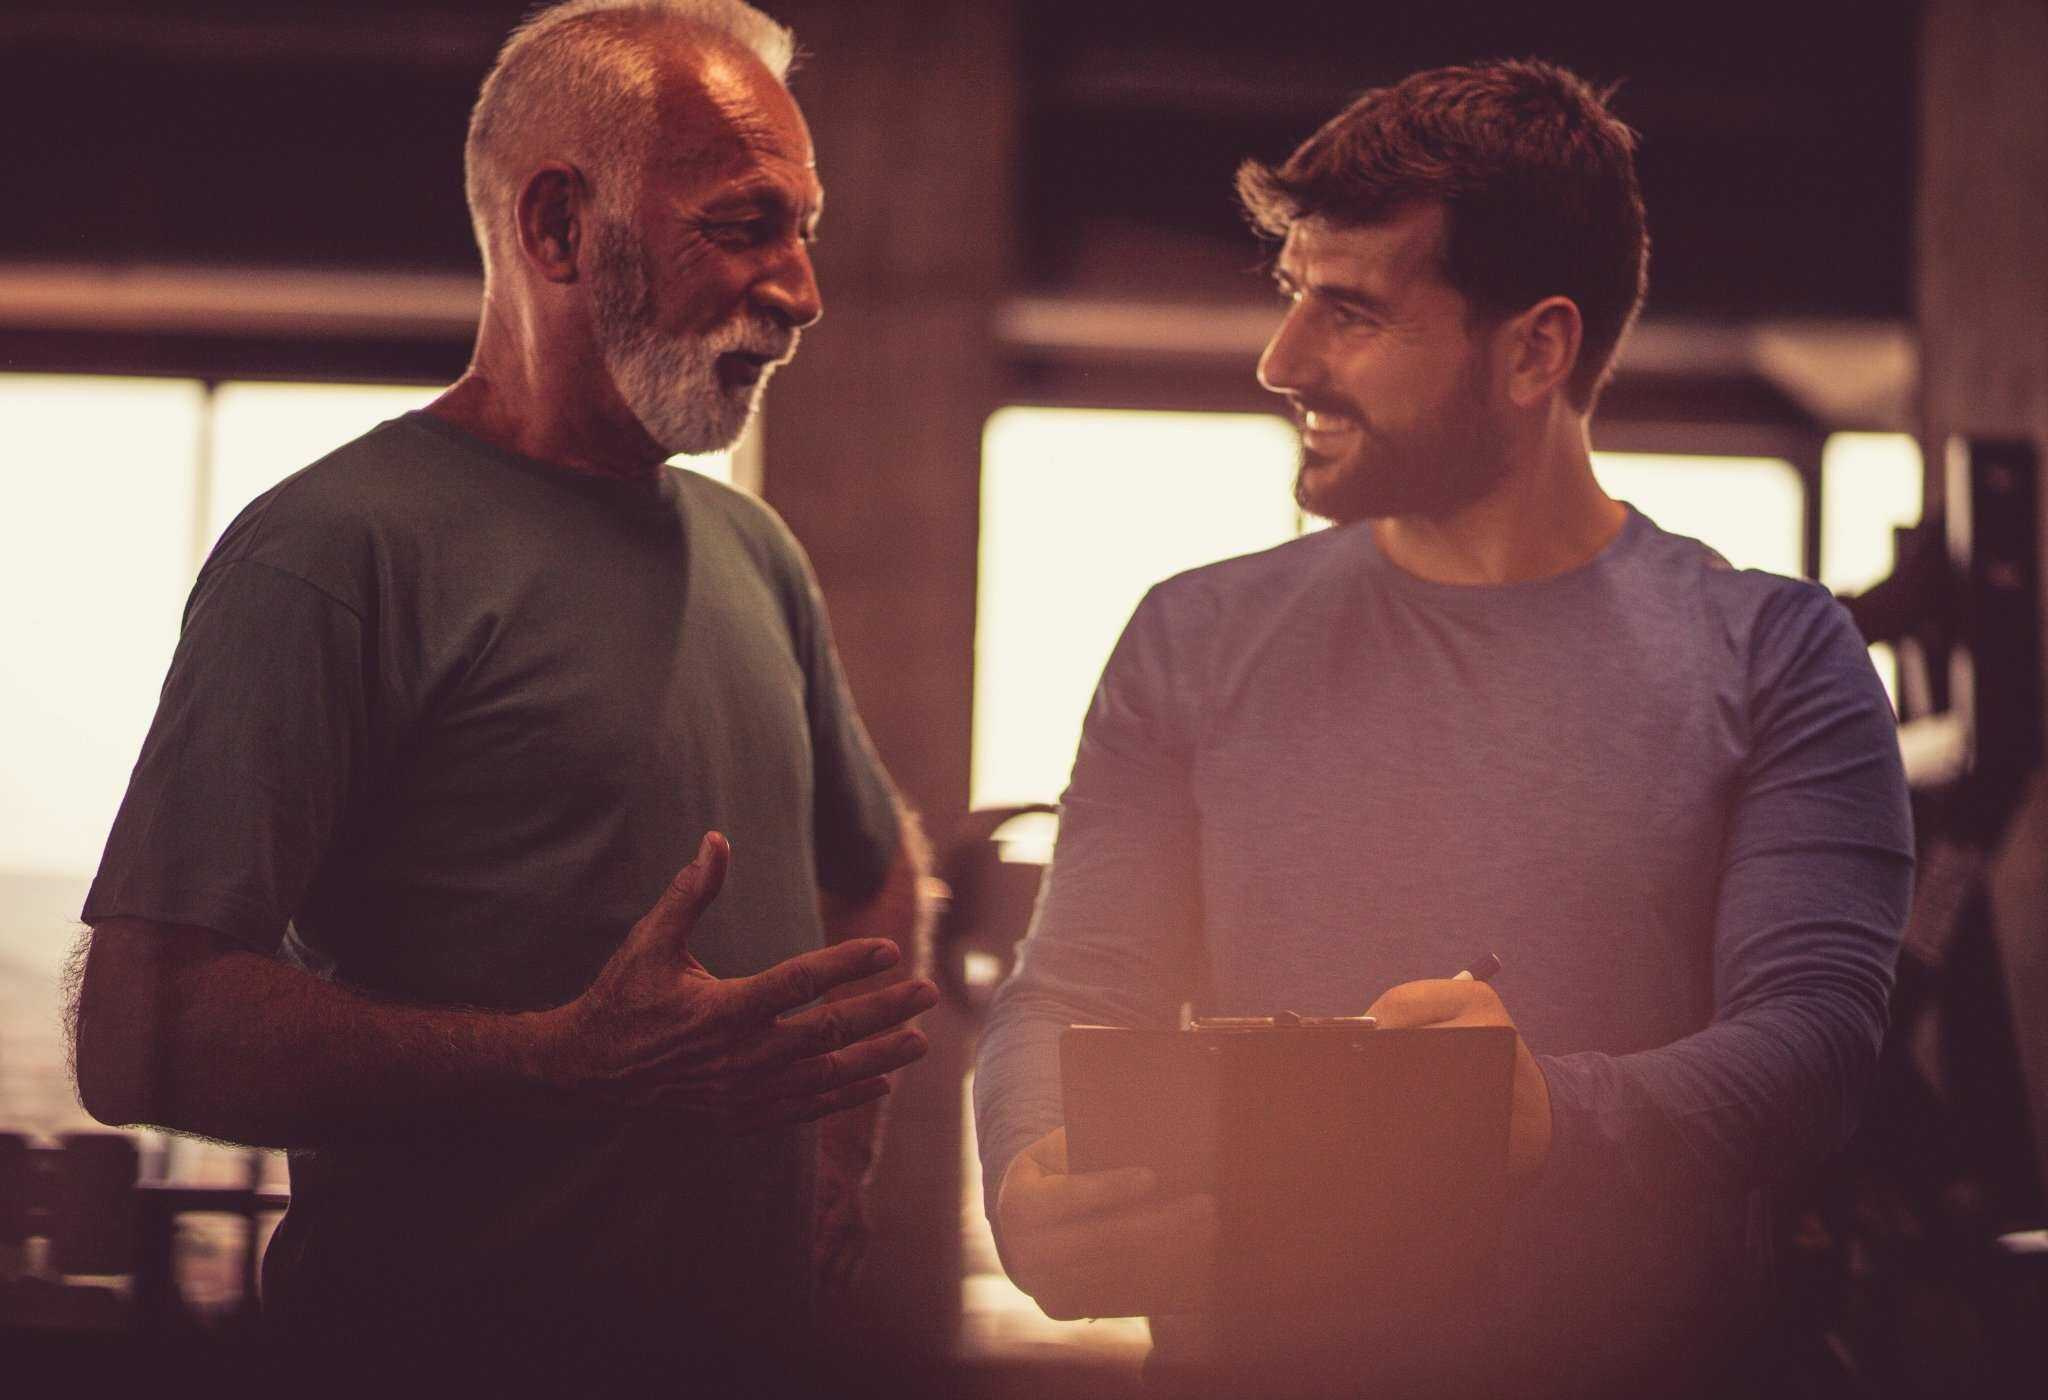 older man gives advice to younger